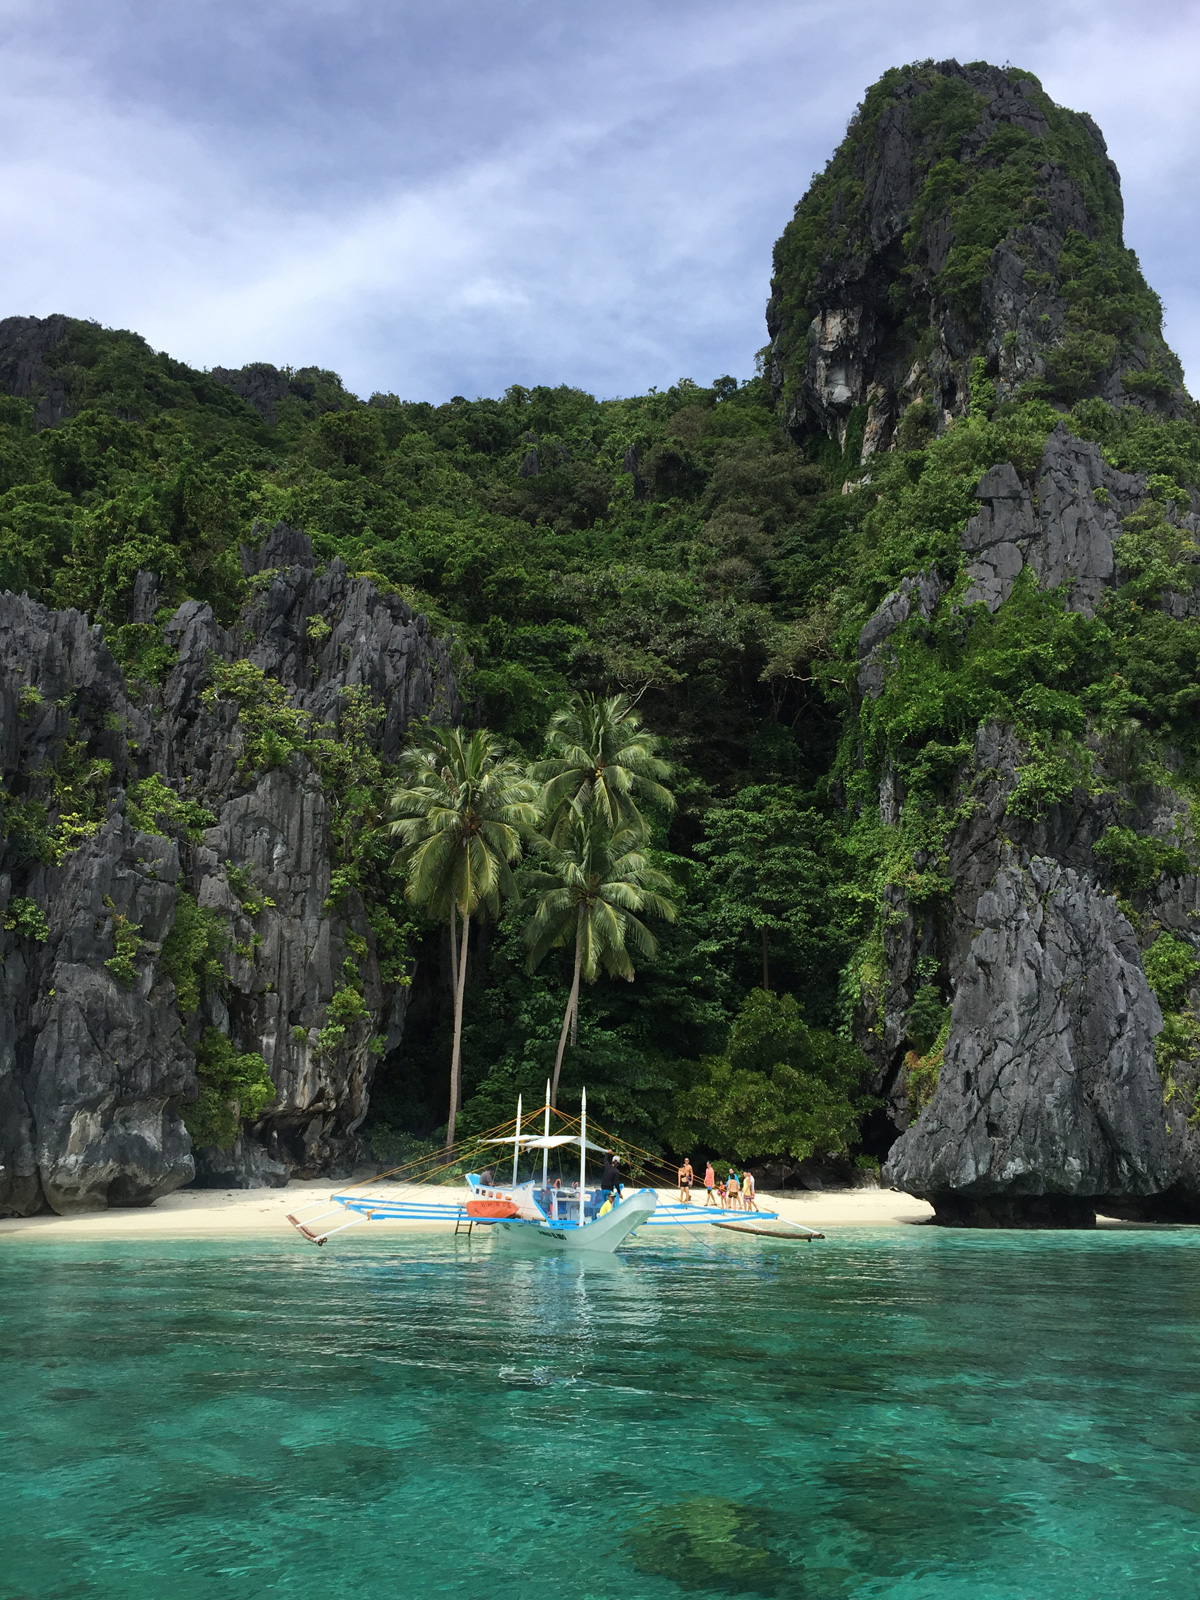 entalua island photo, el nido